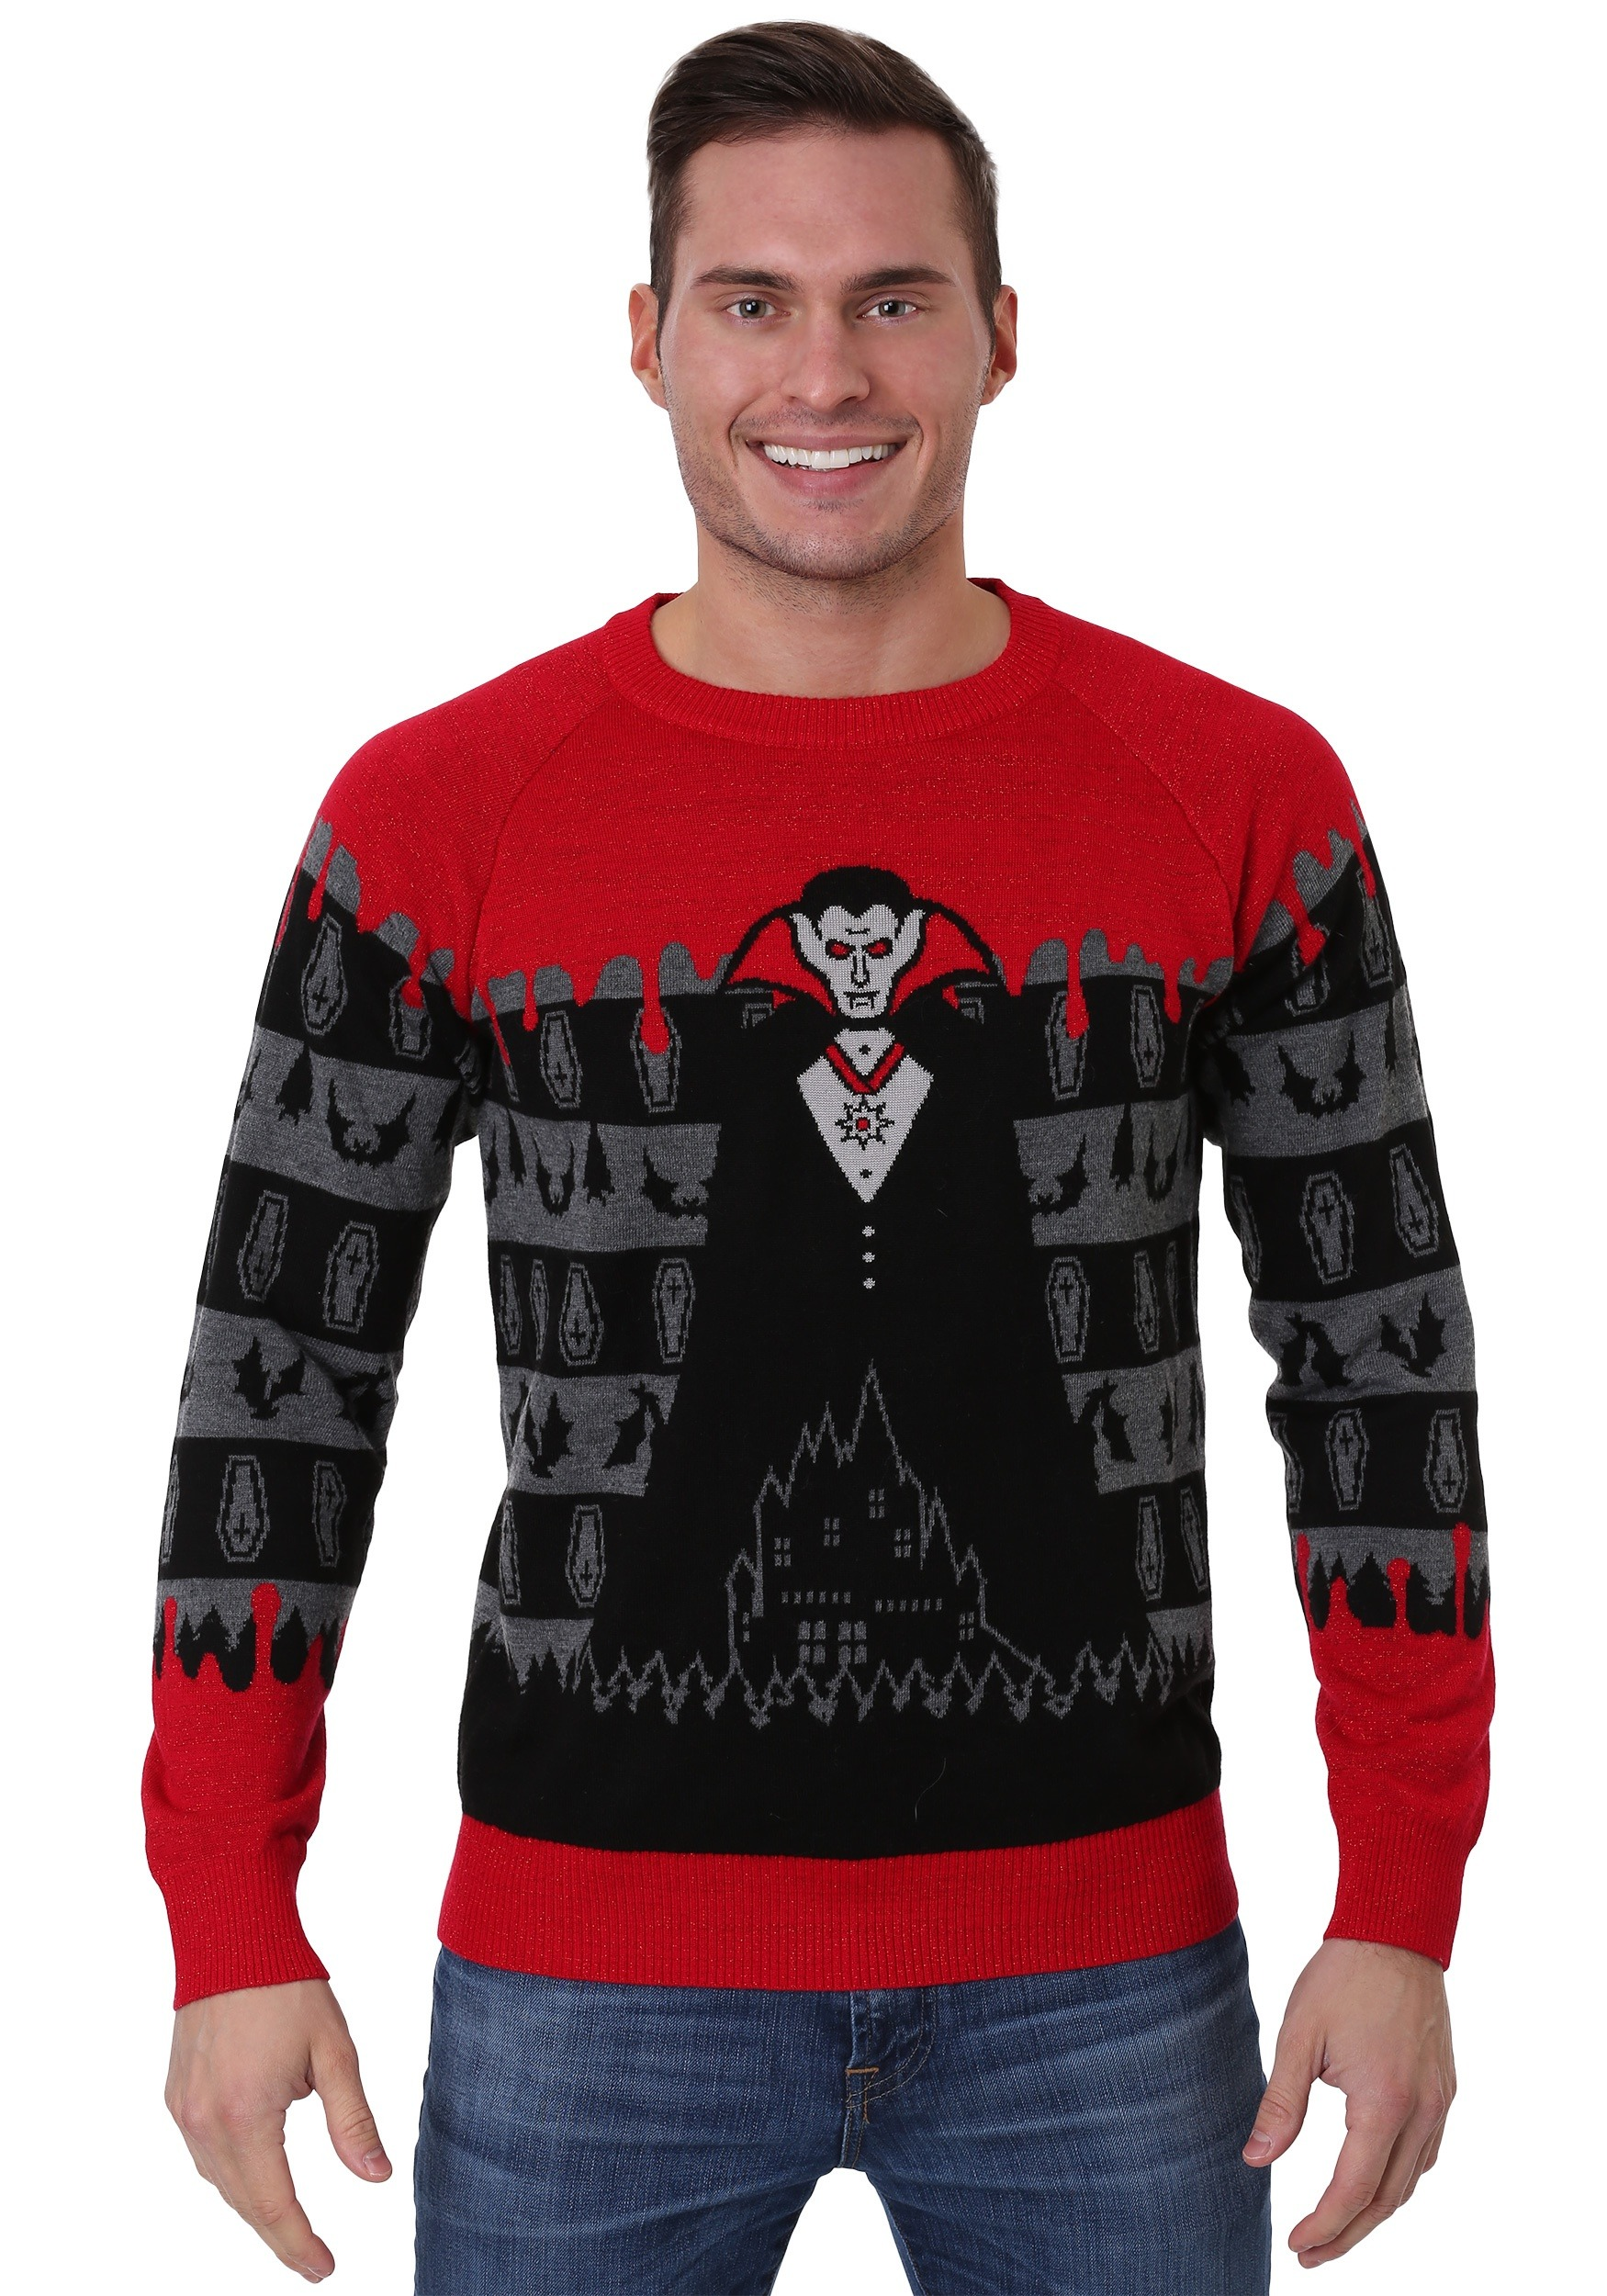 fb9c0ad94 Dracula Vampire Halloween Sweater for Adults